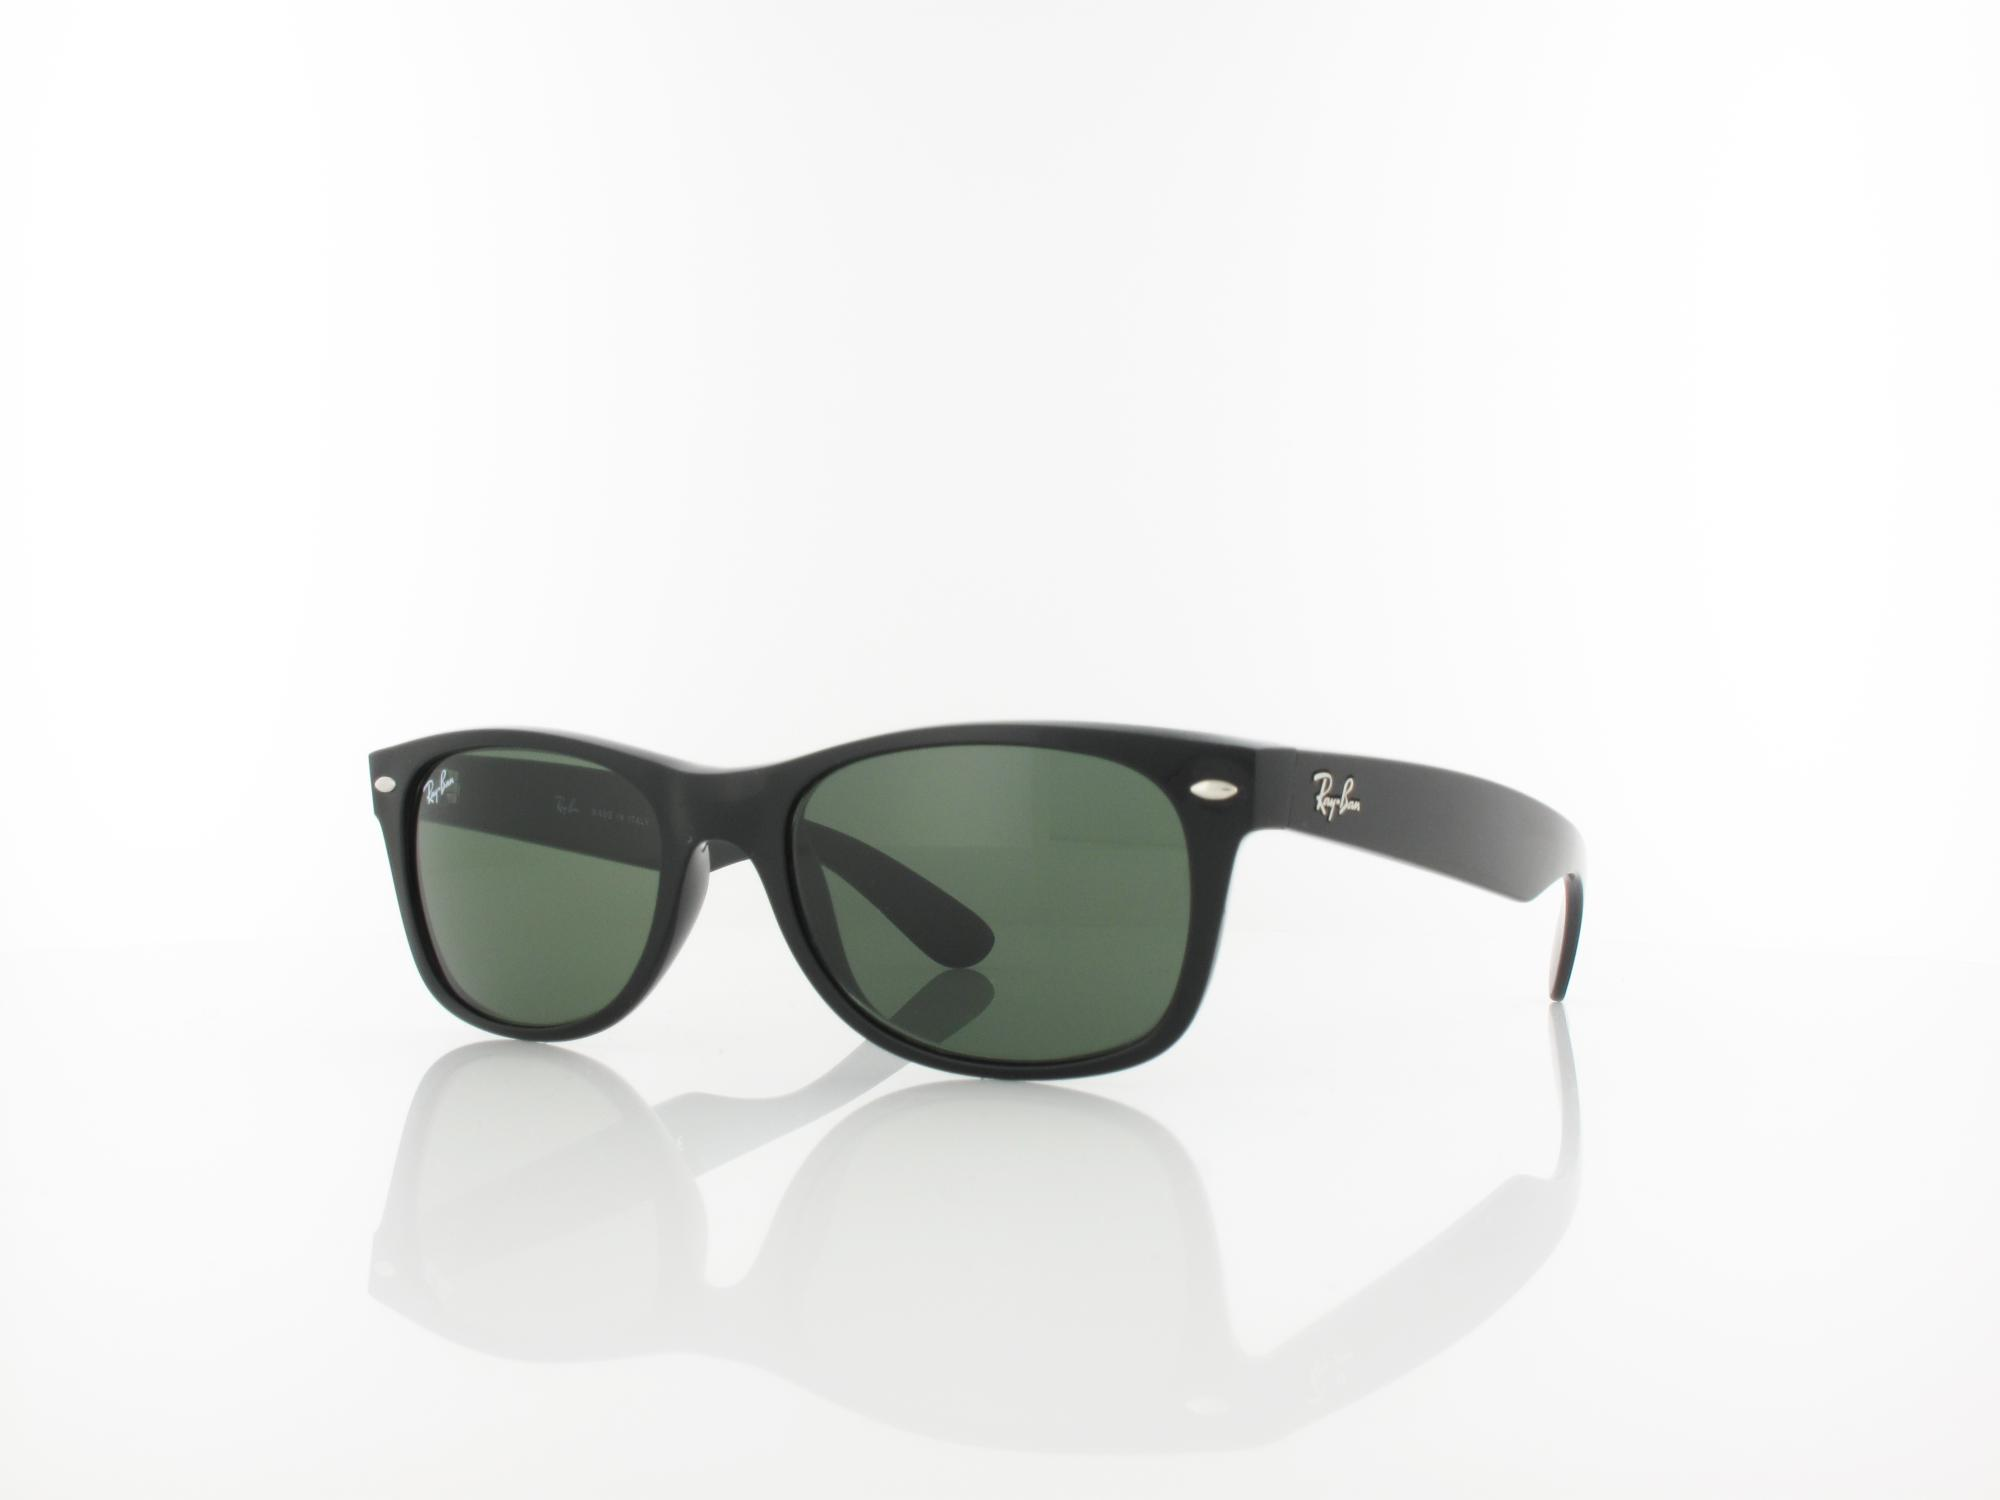 Ray Ban | New Wayfarer RB2132 901 52 | black / green